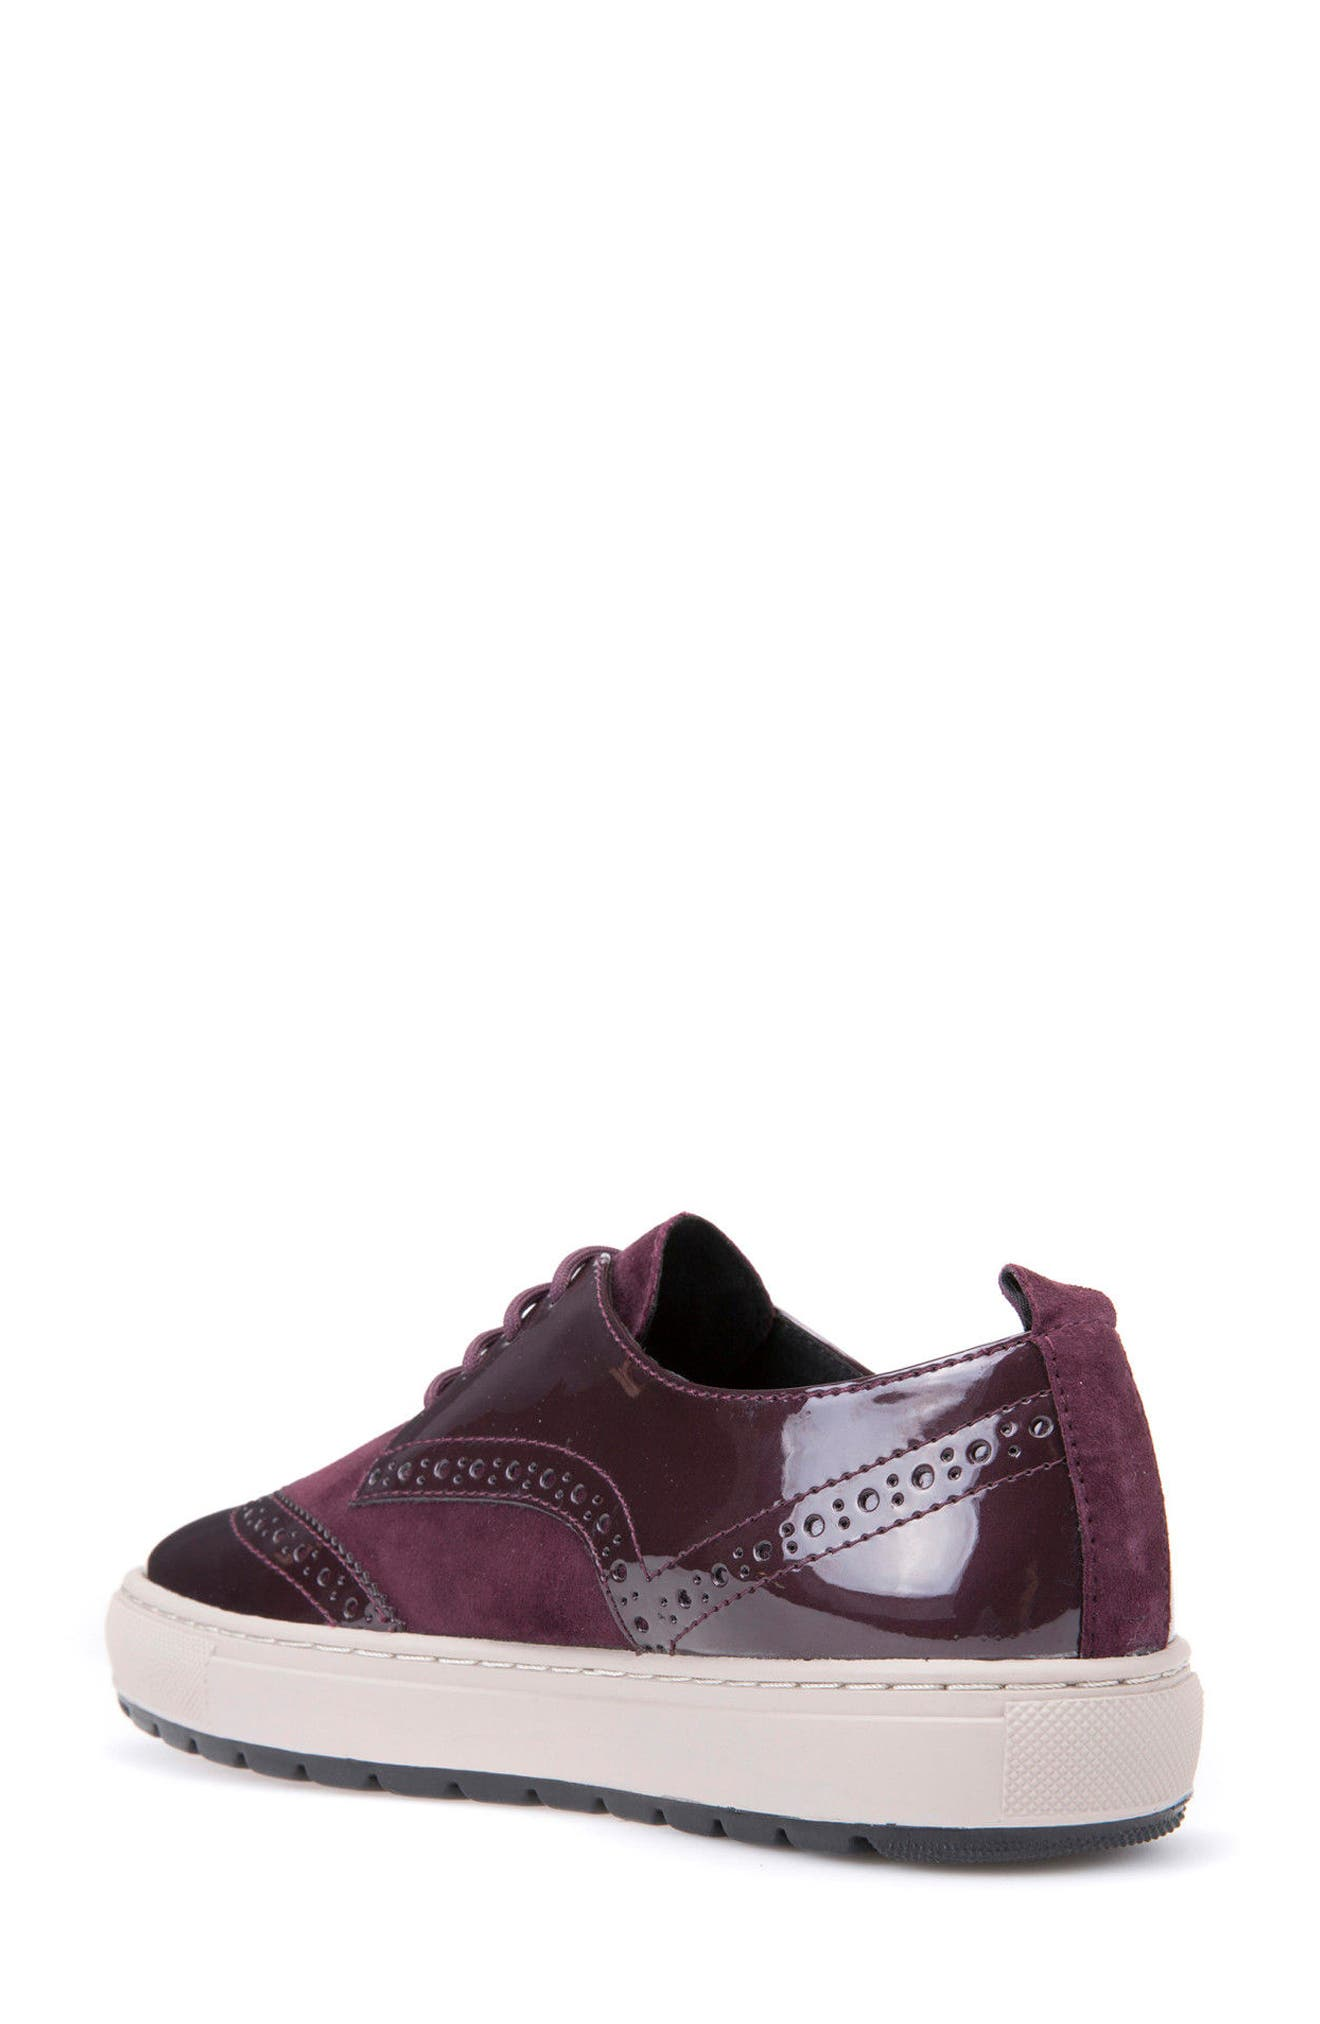 Alternate Image 2  - Geox Breeda Oxford Sneaker (Women)